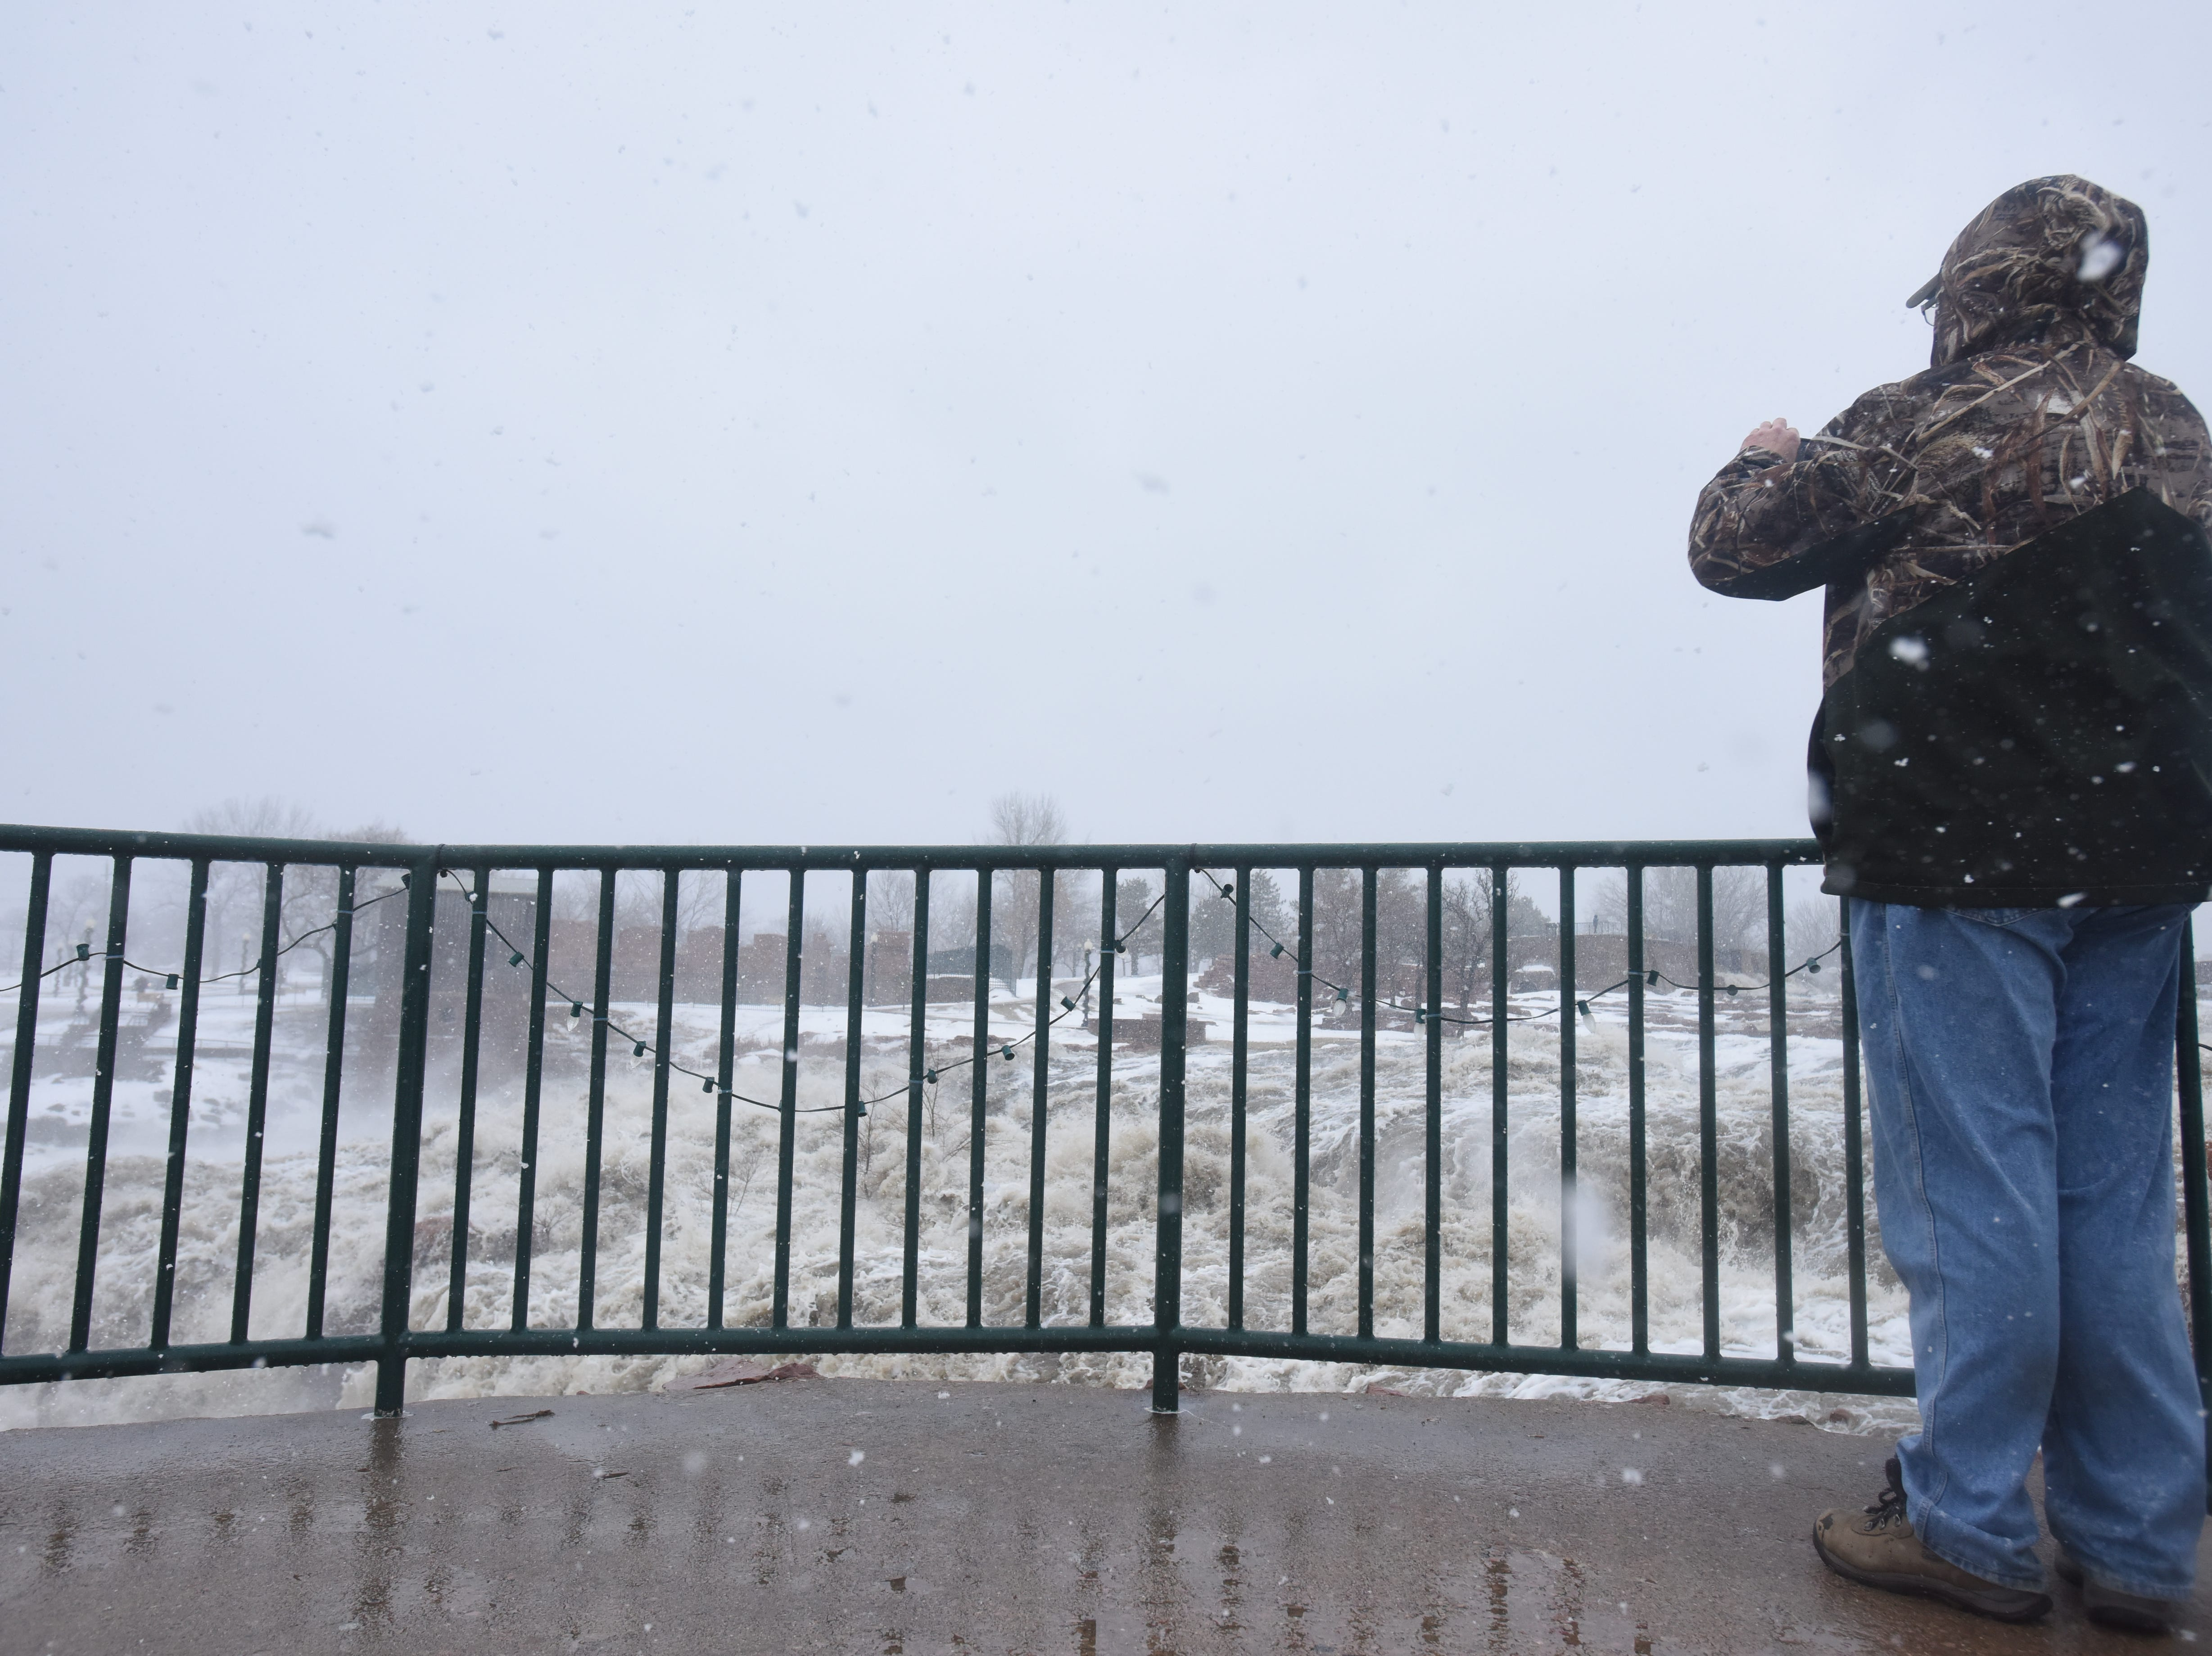 Don Thorpe, of Mount Vernon, takes a photo of Falls Park Thursday, March 14, 2019, after rain caused flooding all around Sioux Falls.